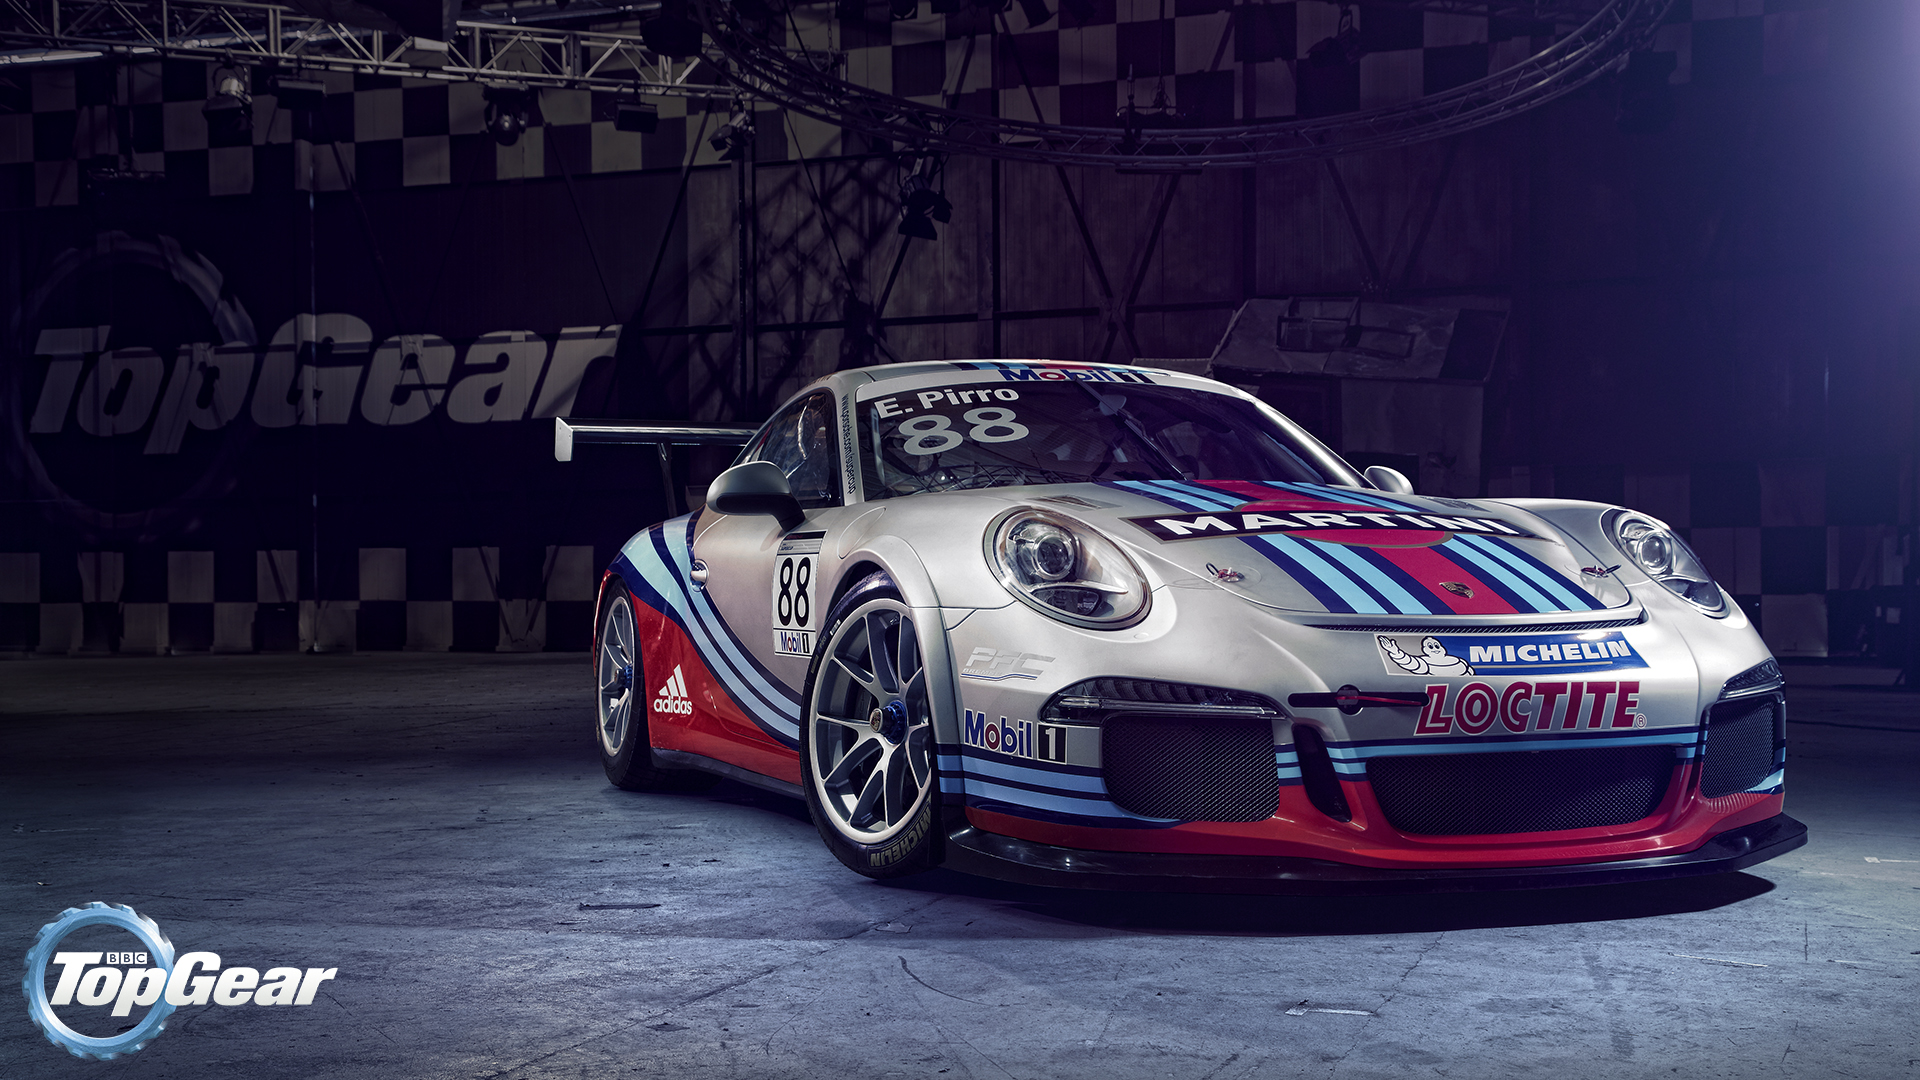 Exclusive Wallpapers Martini Race Cars Martini Race Car 2917701 Hd Wallpaper Backgrounds Download